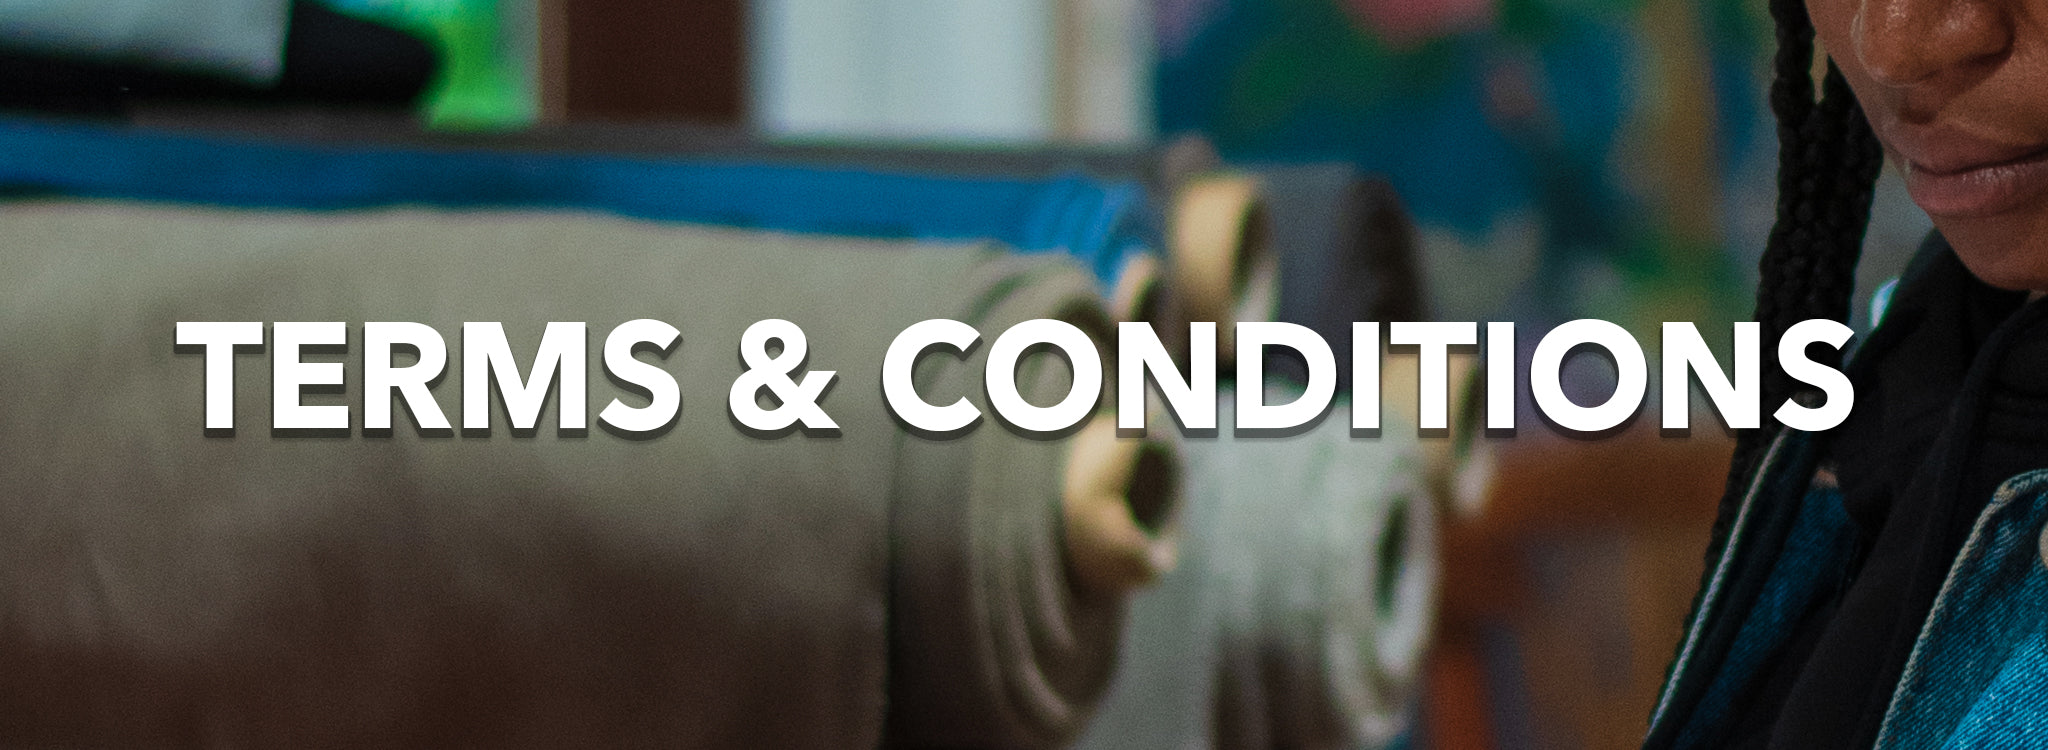 Terms & Conditions for Tattbrand